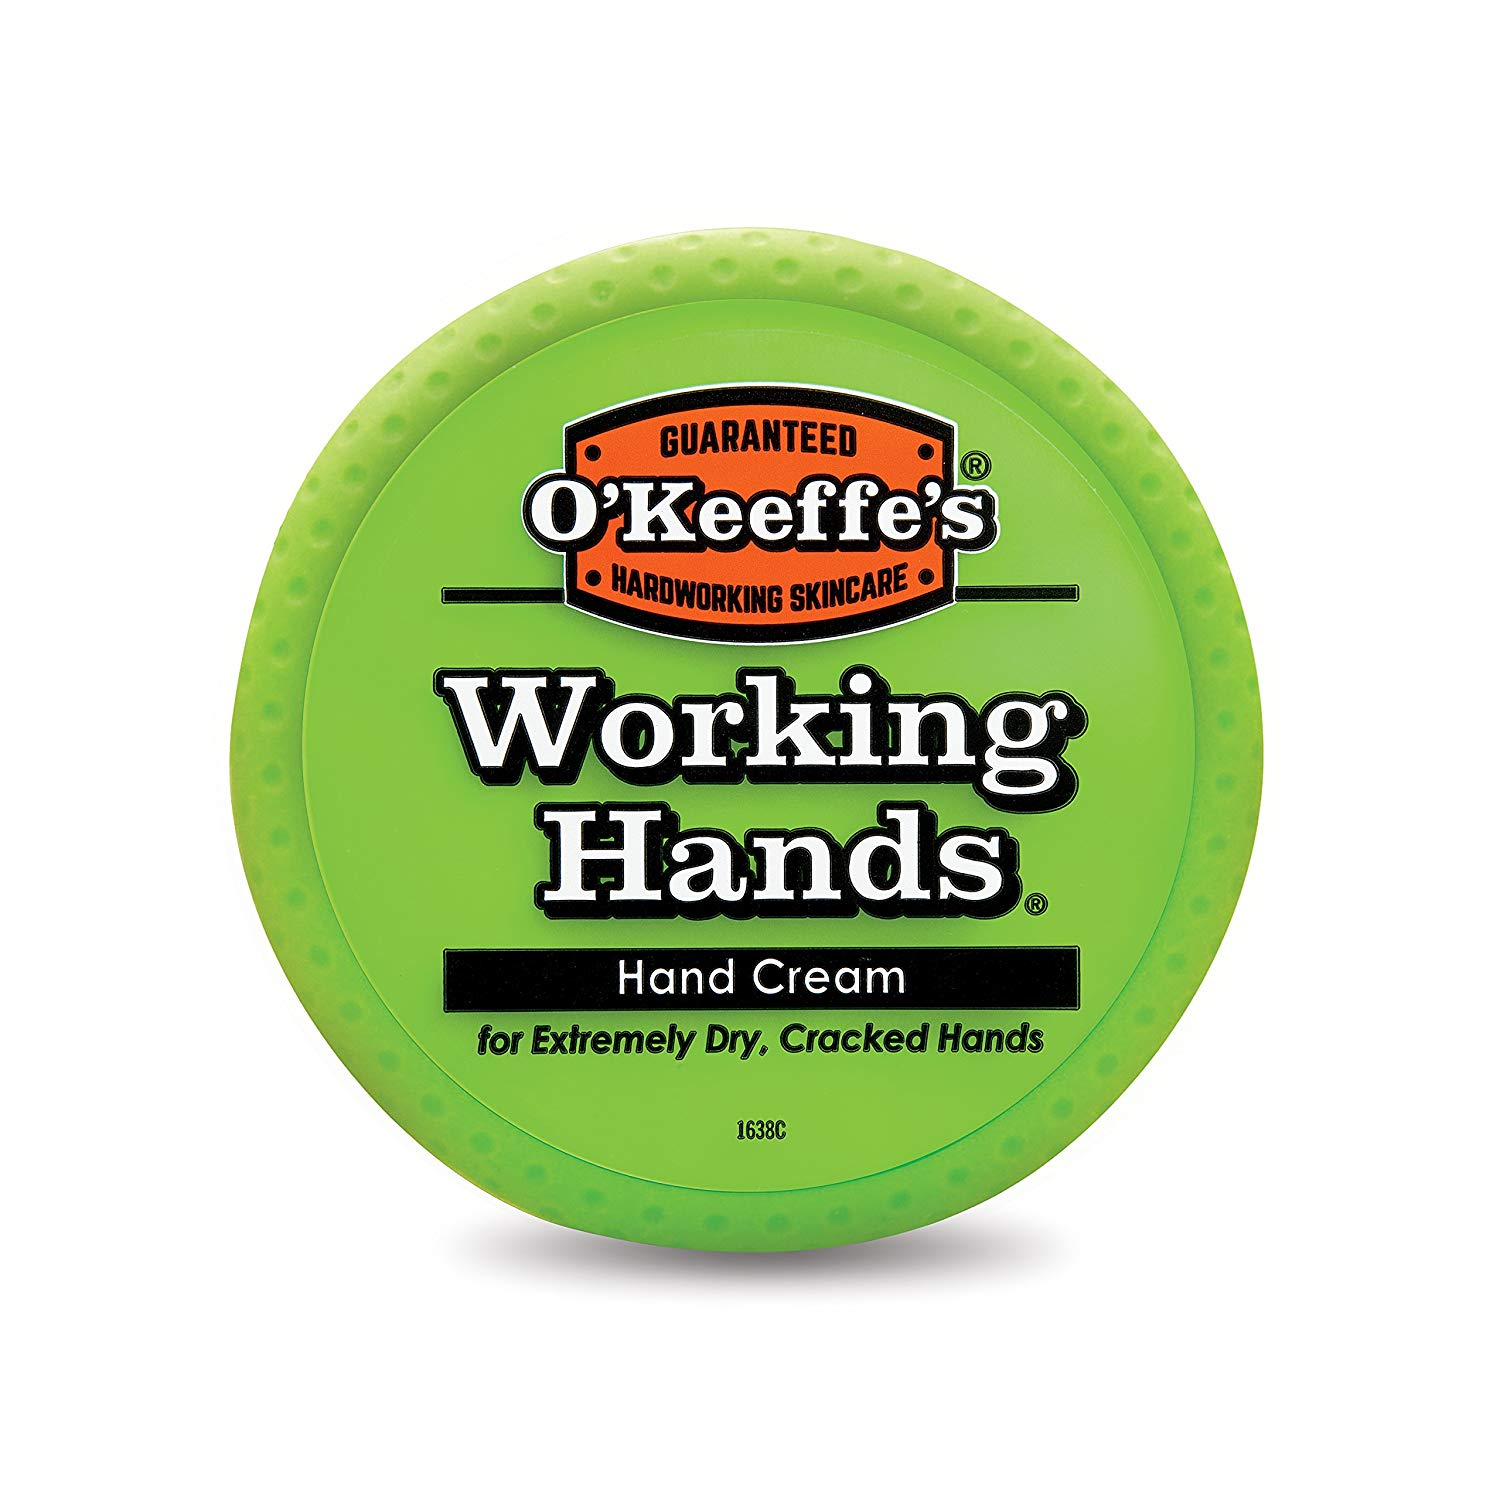 O'keeffe's Working Hands Cream 3.4 Oz.の画像